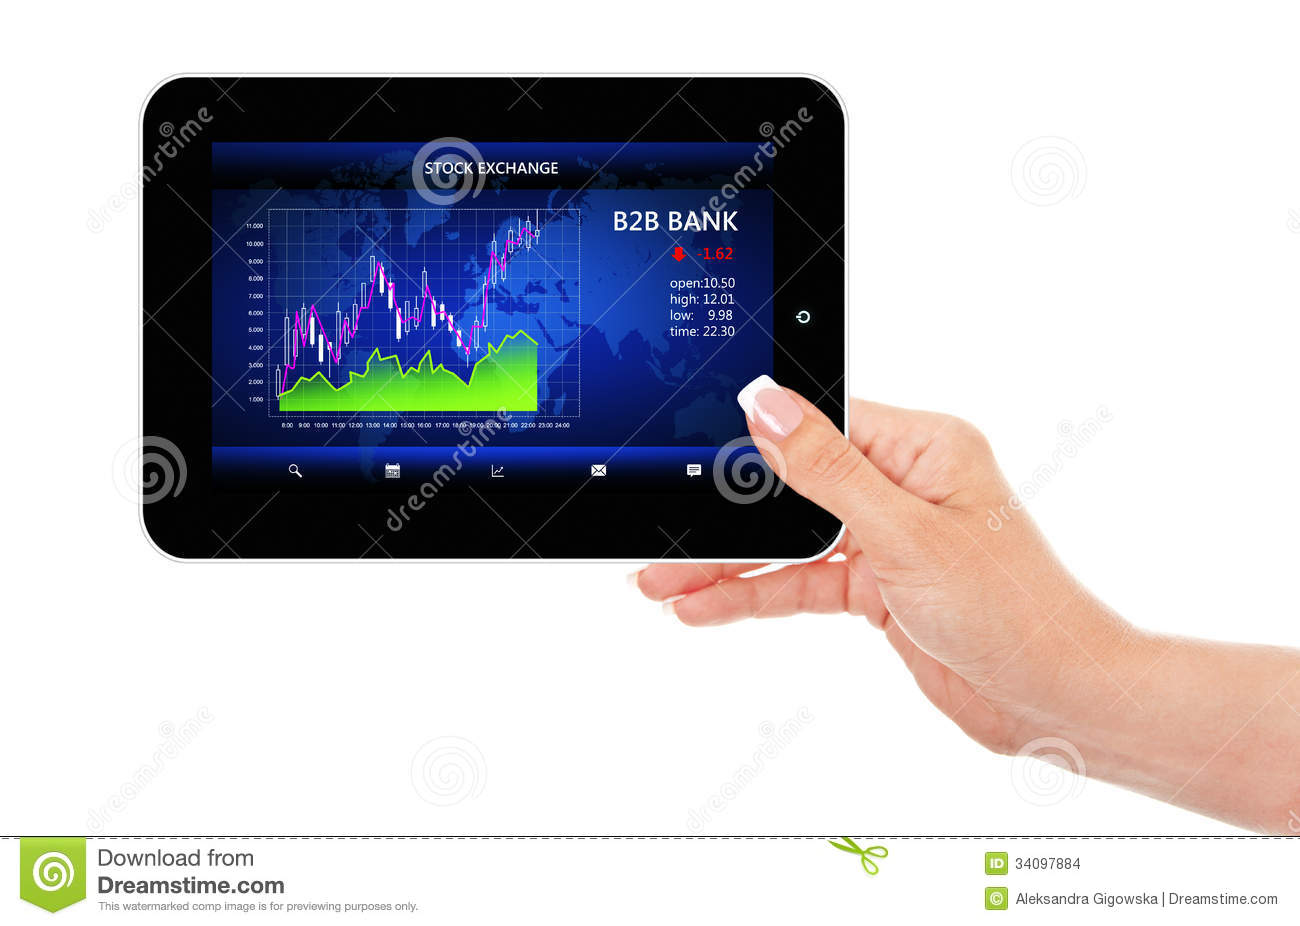 how to download 1mobile market on ipad